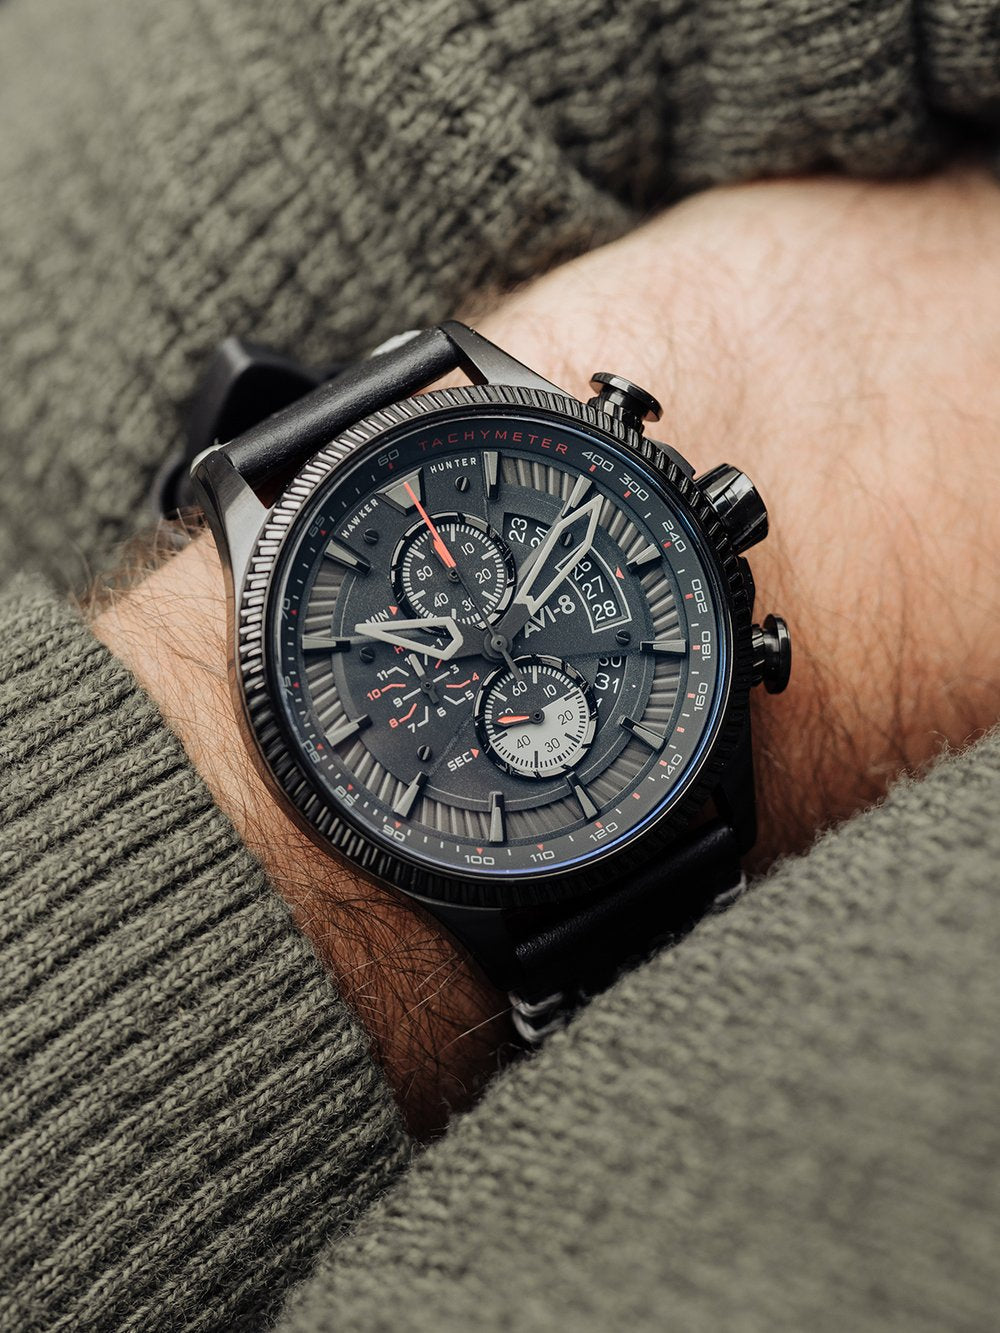 Hawker Hunter - Avon Chronograph Edition (Stealth Black)  AV-4064-05, Bunker 27